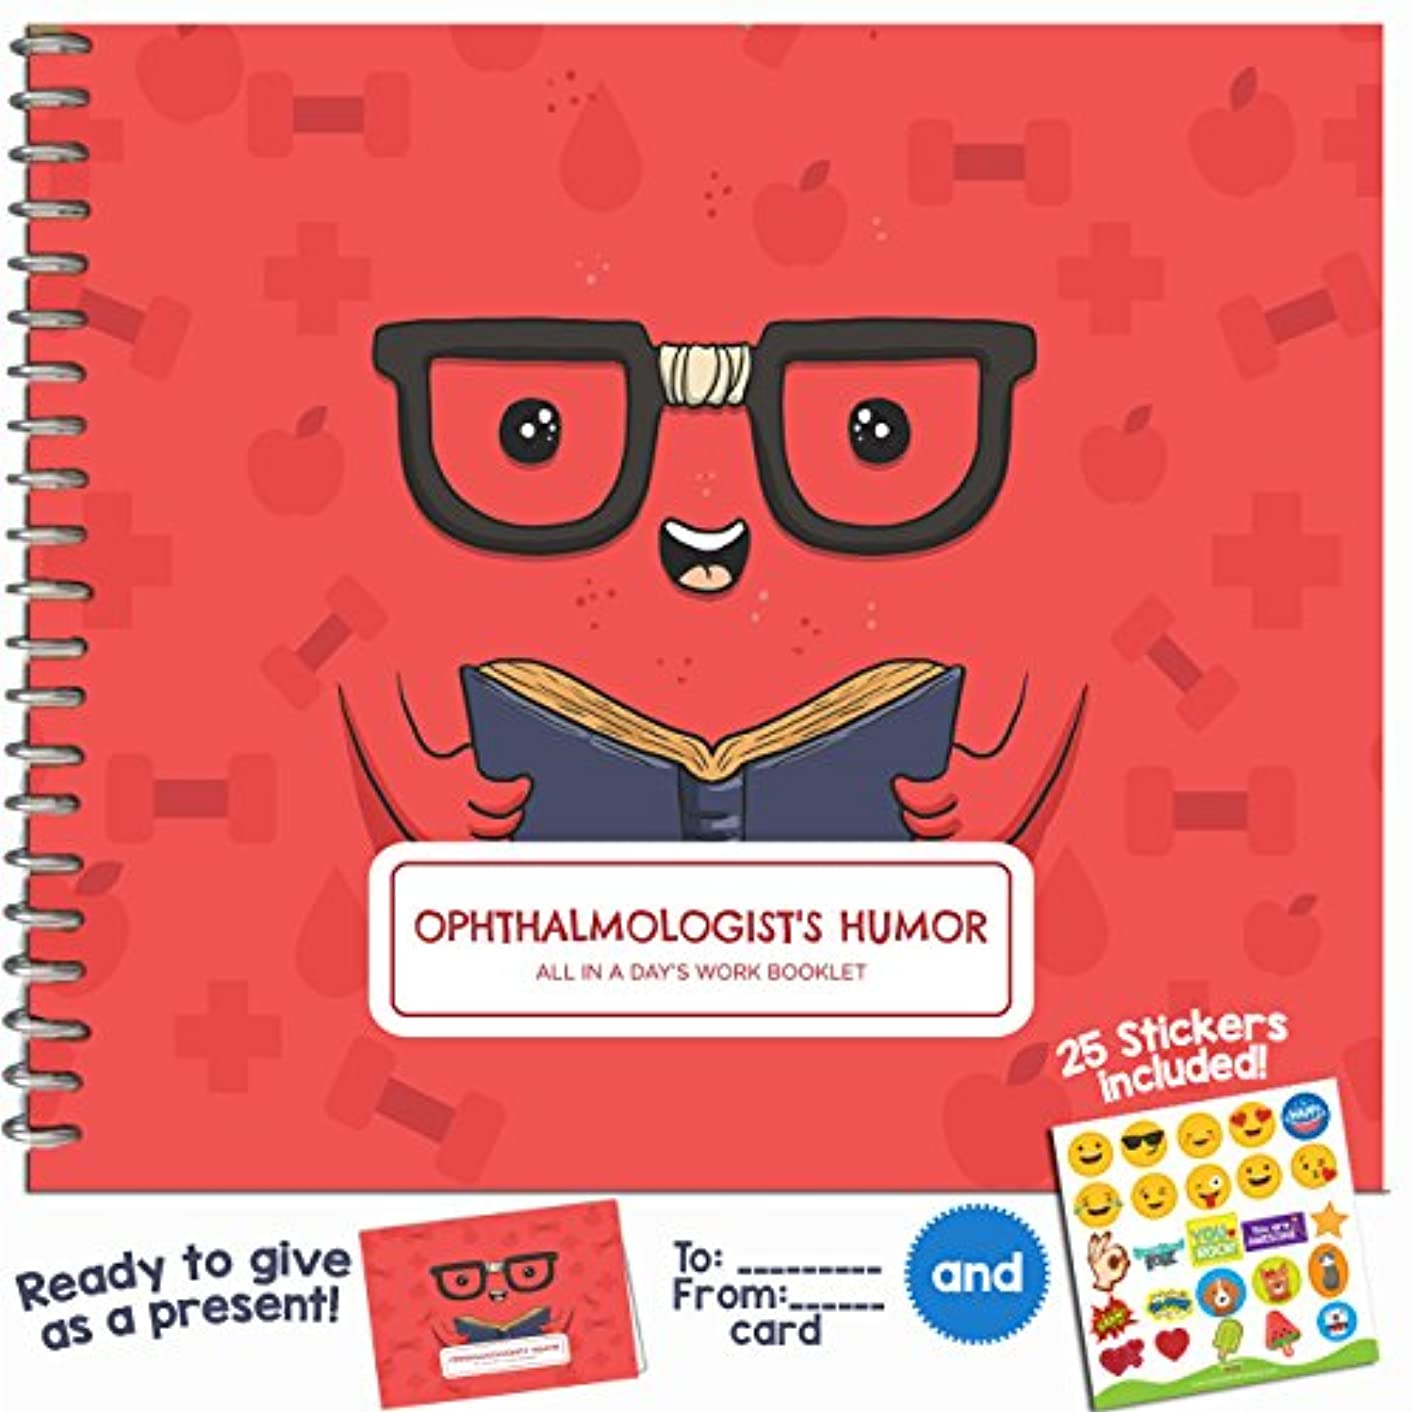 Eye Doctor Gift - A Funny Booklet for Your Favorite Ophthalmologist, Eye Doctor Or Specialist - Ophthalmology Gifts with Funny Quotes and Designs - Includes Stickers and a Matching Card